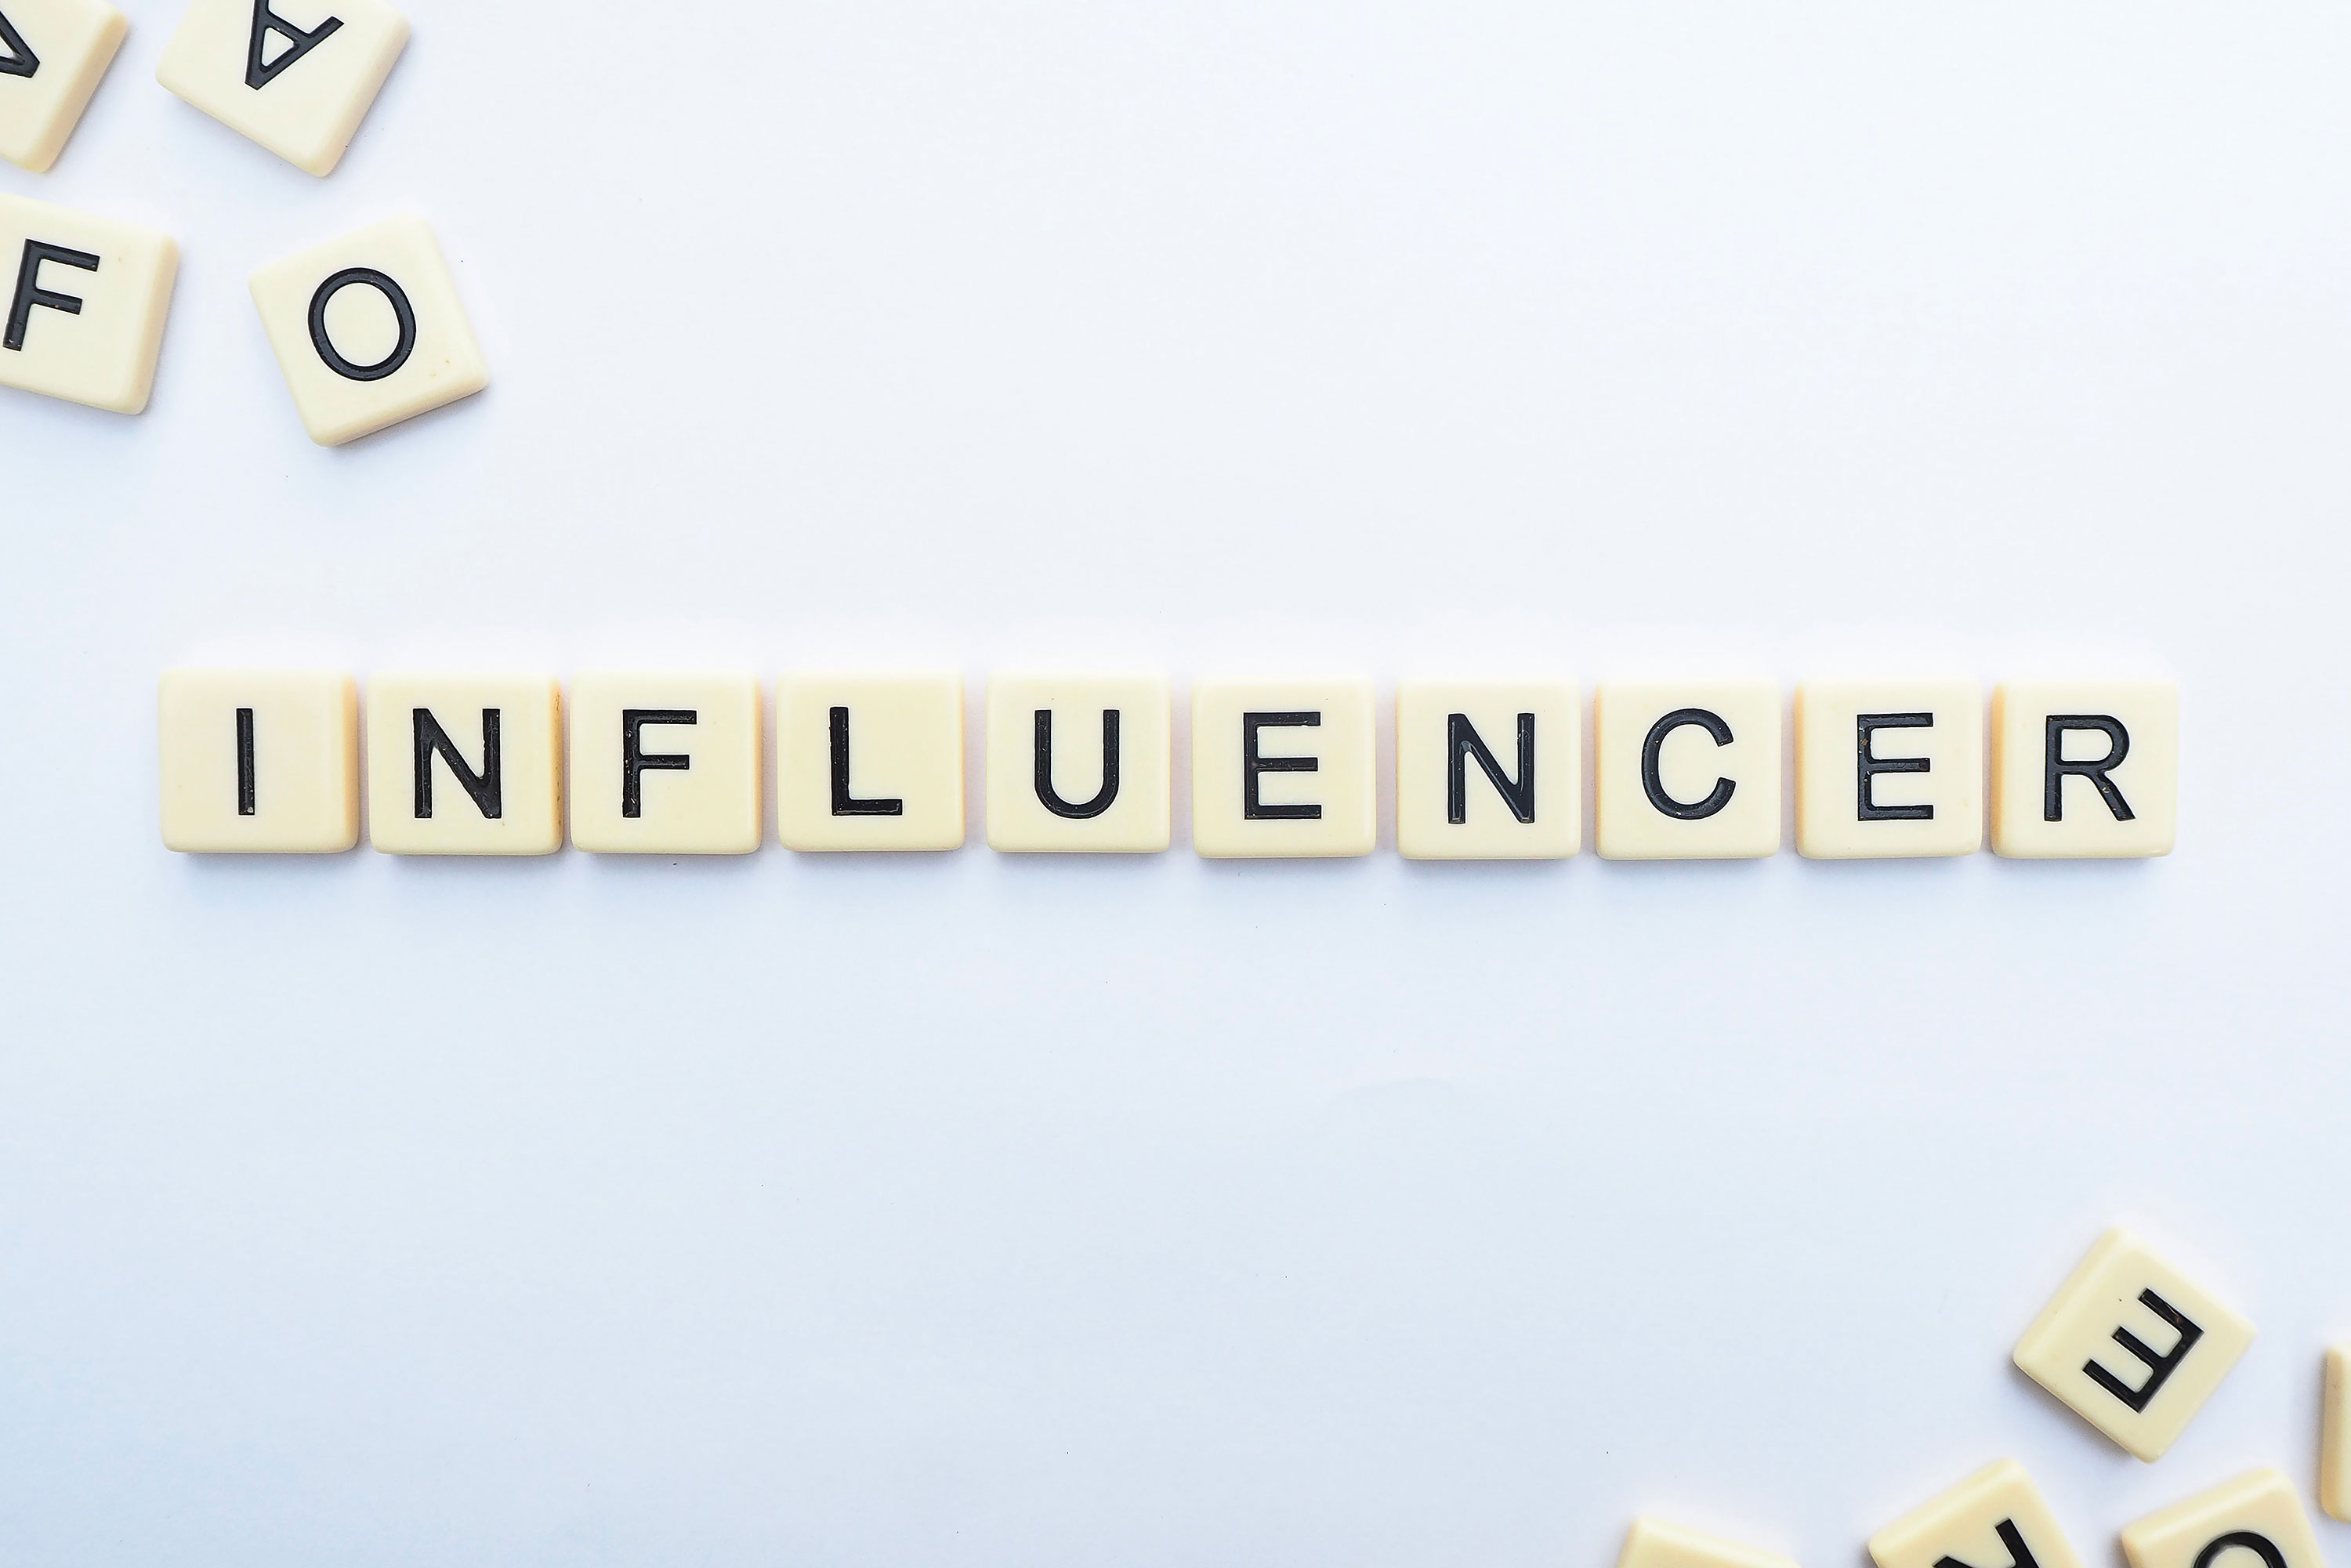 How to become and influencer